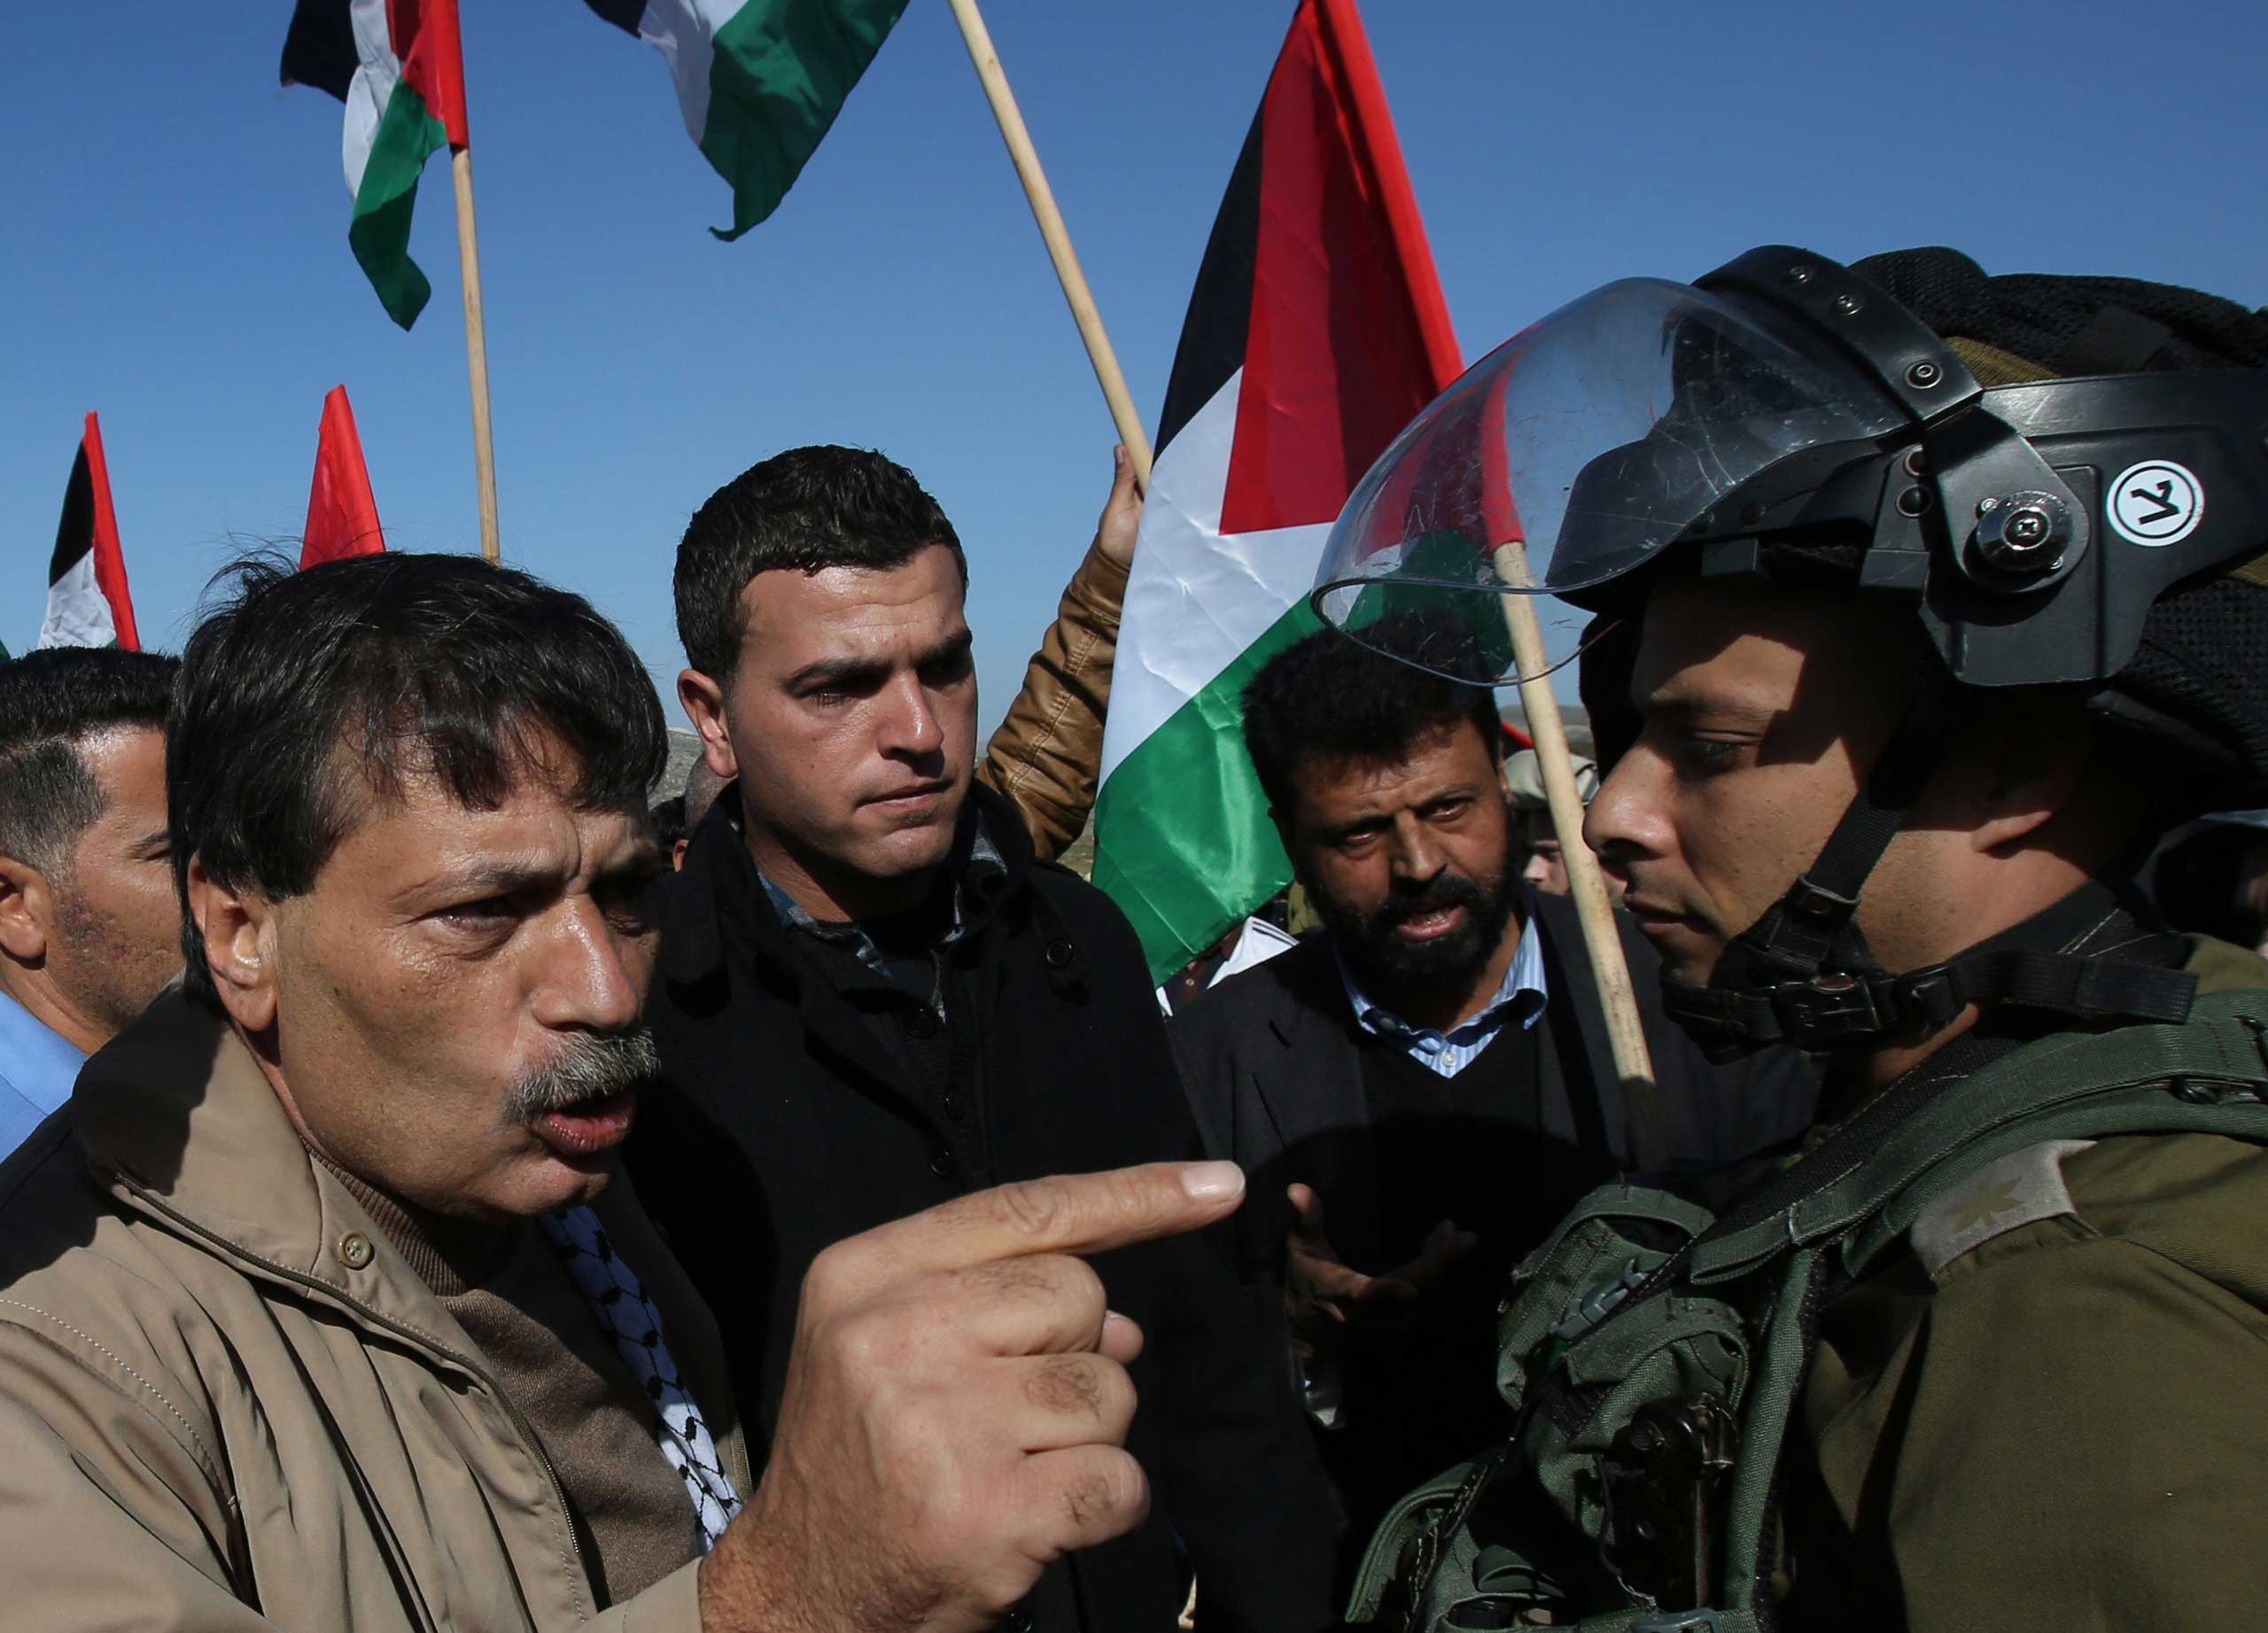 Palestinian official Ziad Abu Ein, in charge of the issue of Israeli settlements for the Palestinian Authority, argues with Israeli soldiers during a demonstration in the village of  Turmus Aya near Ramallah, on Dec. 10, 2014.